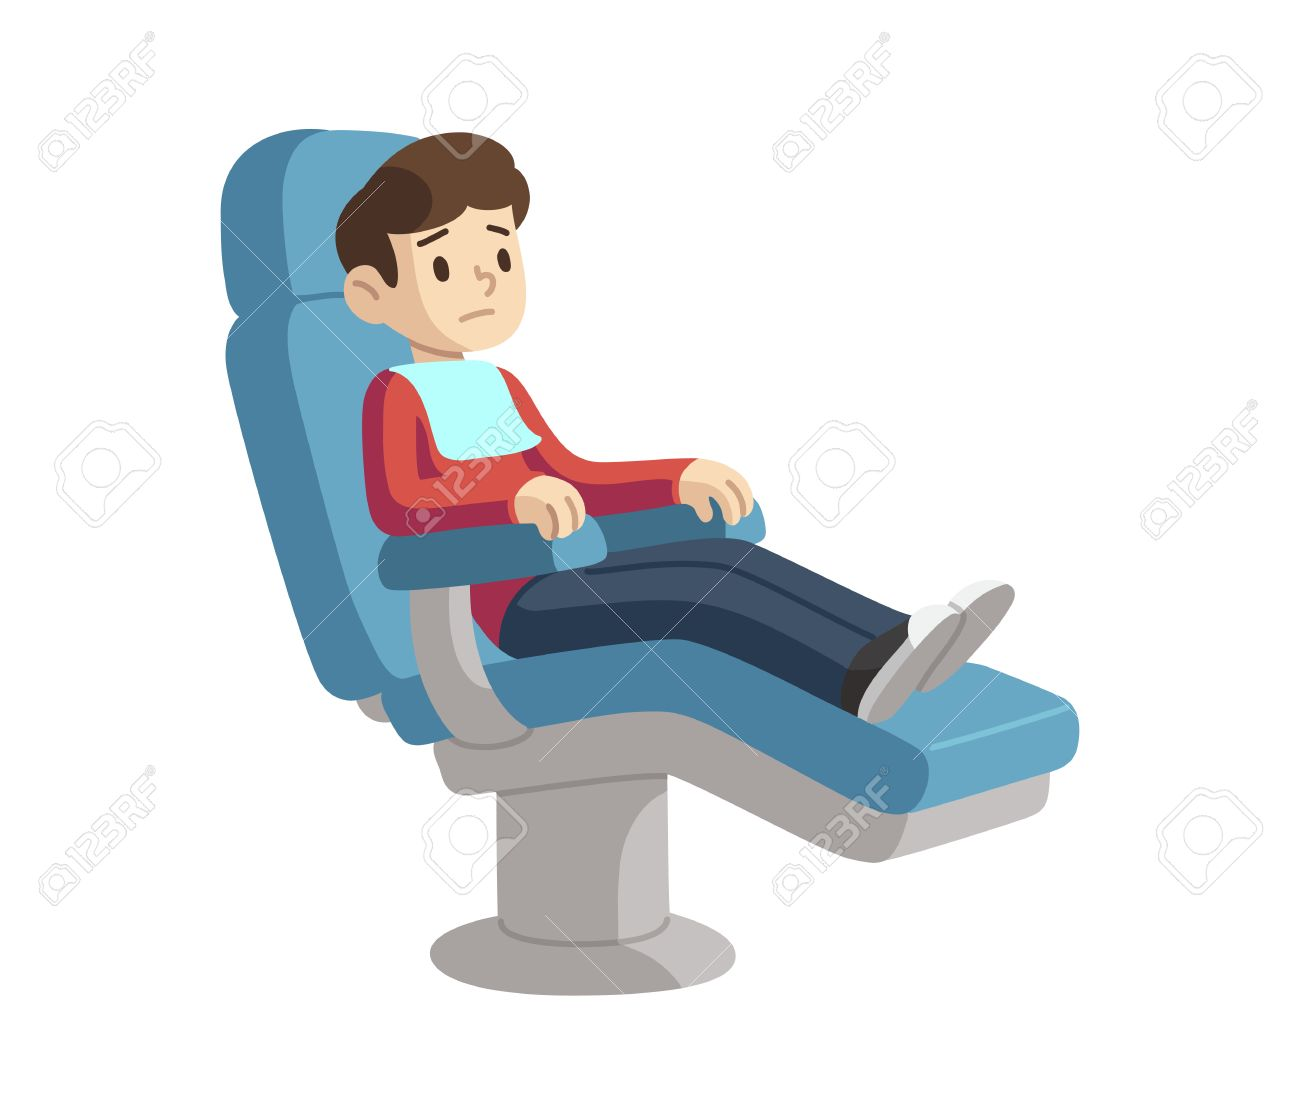 Peachy Cute Cartoon Boy On Dentist Visit Sitting In Dental Chair With Gmtry Best Dining Table And Chair Ideas Images Gmtryco